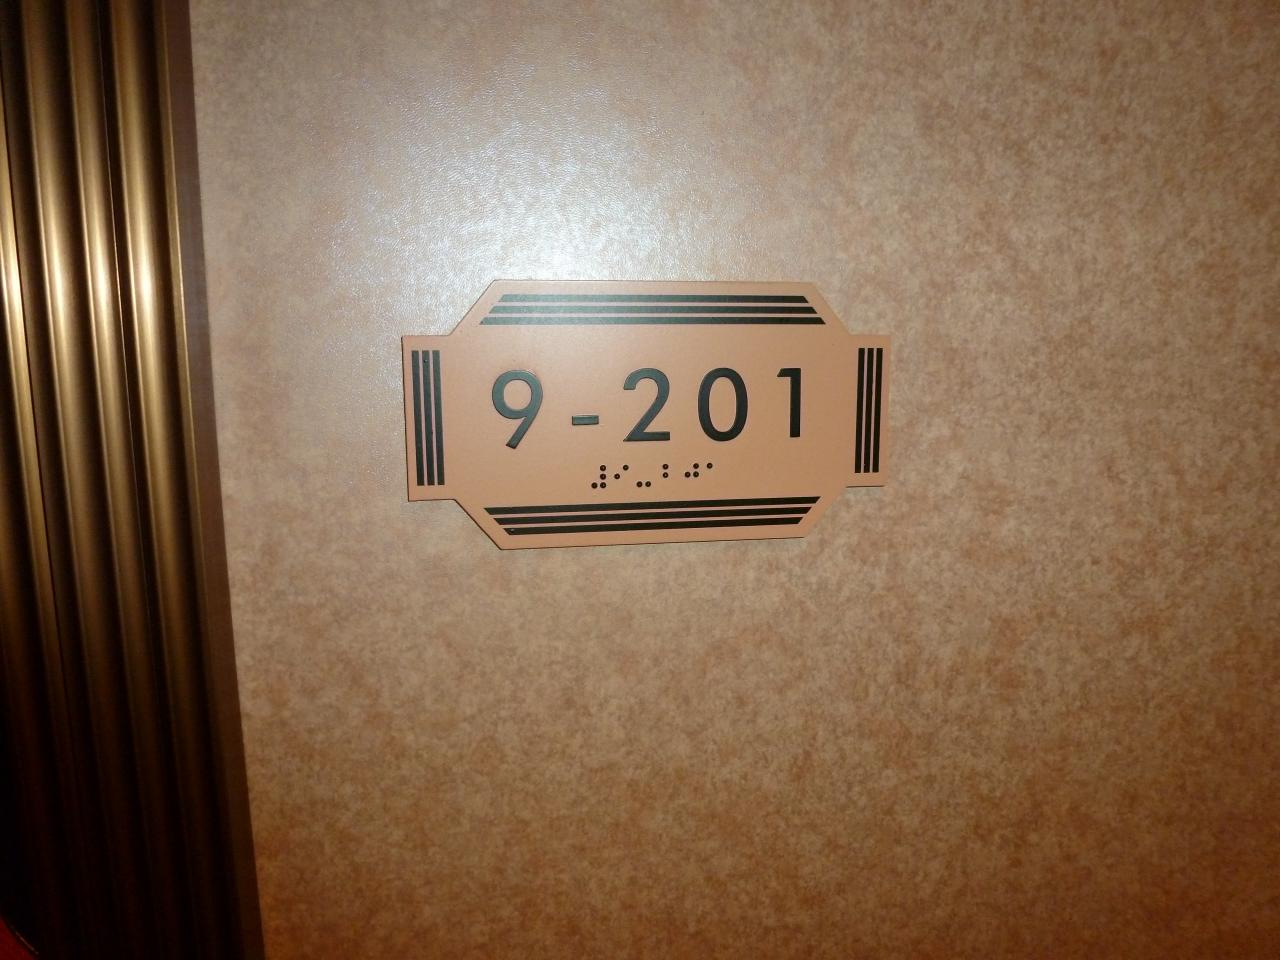 Carnival Dream Cruise Review For Cabin 9201